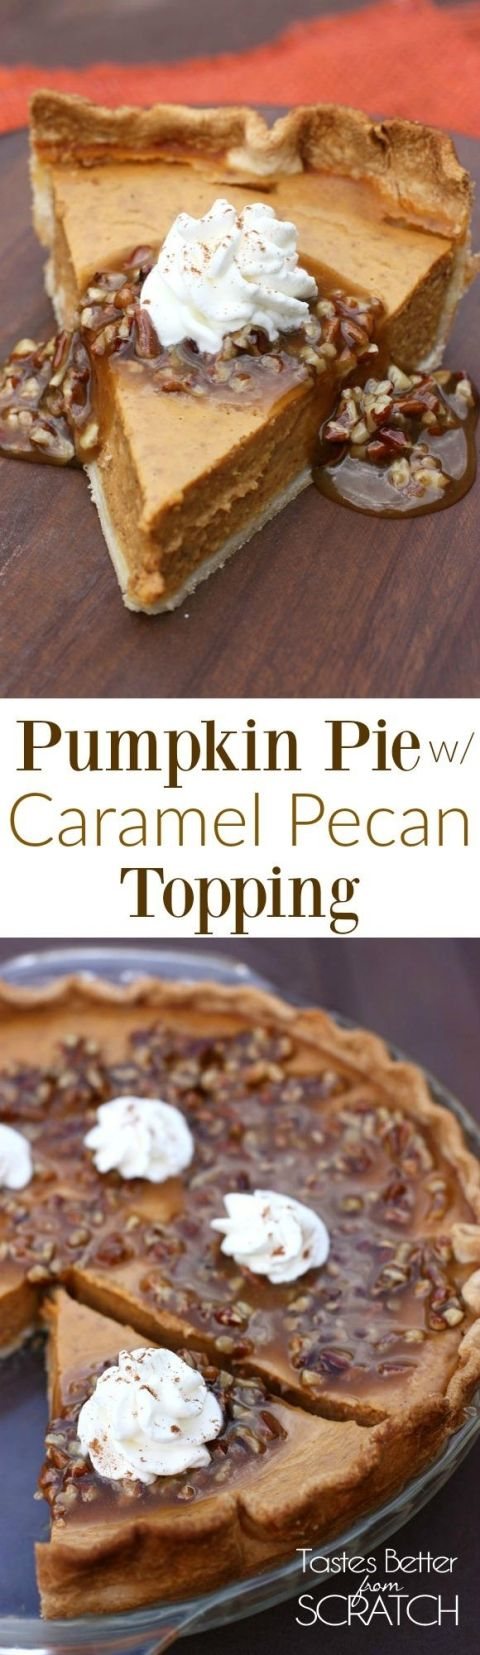 Pumpkin Pie with Caramel Pecan Topping- My favorite easy Thanksgiving pie…